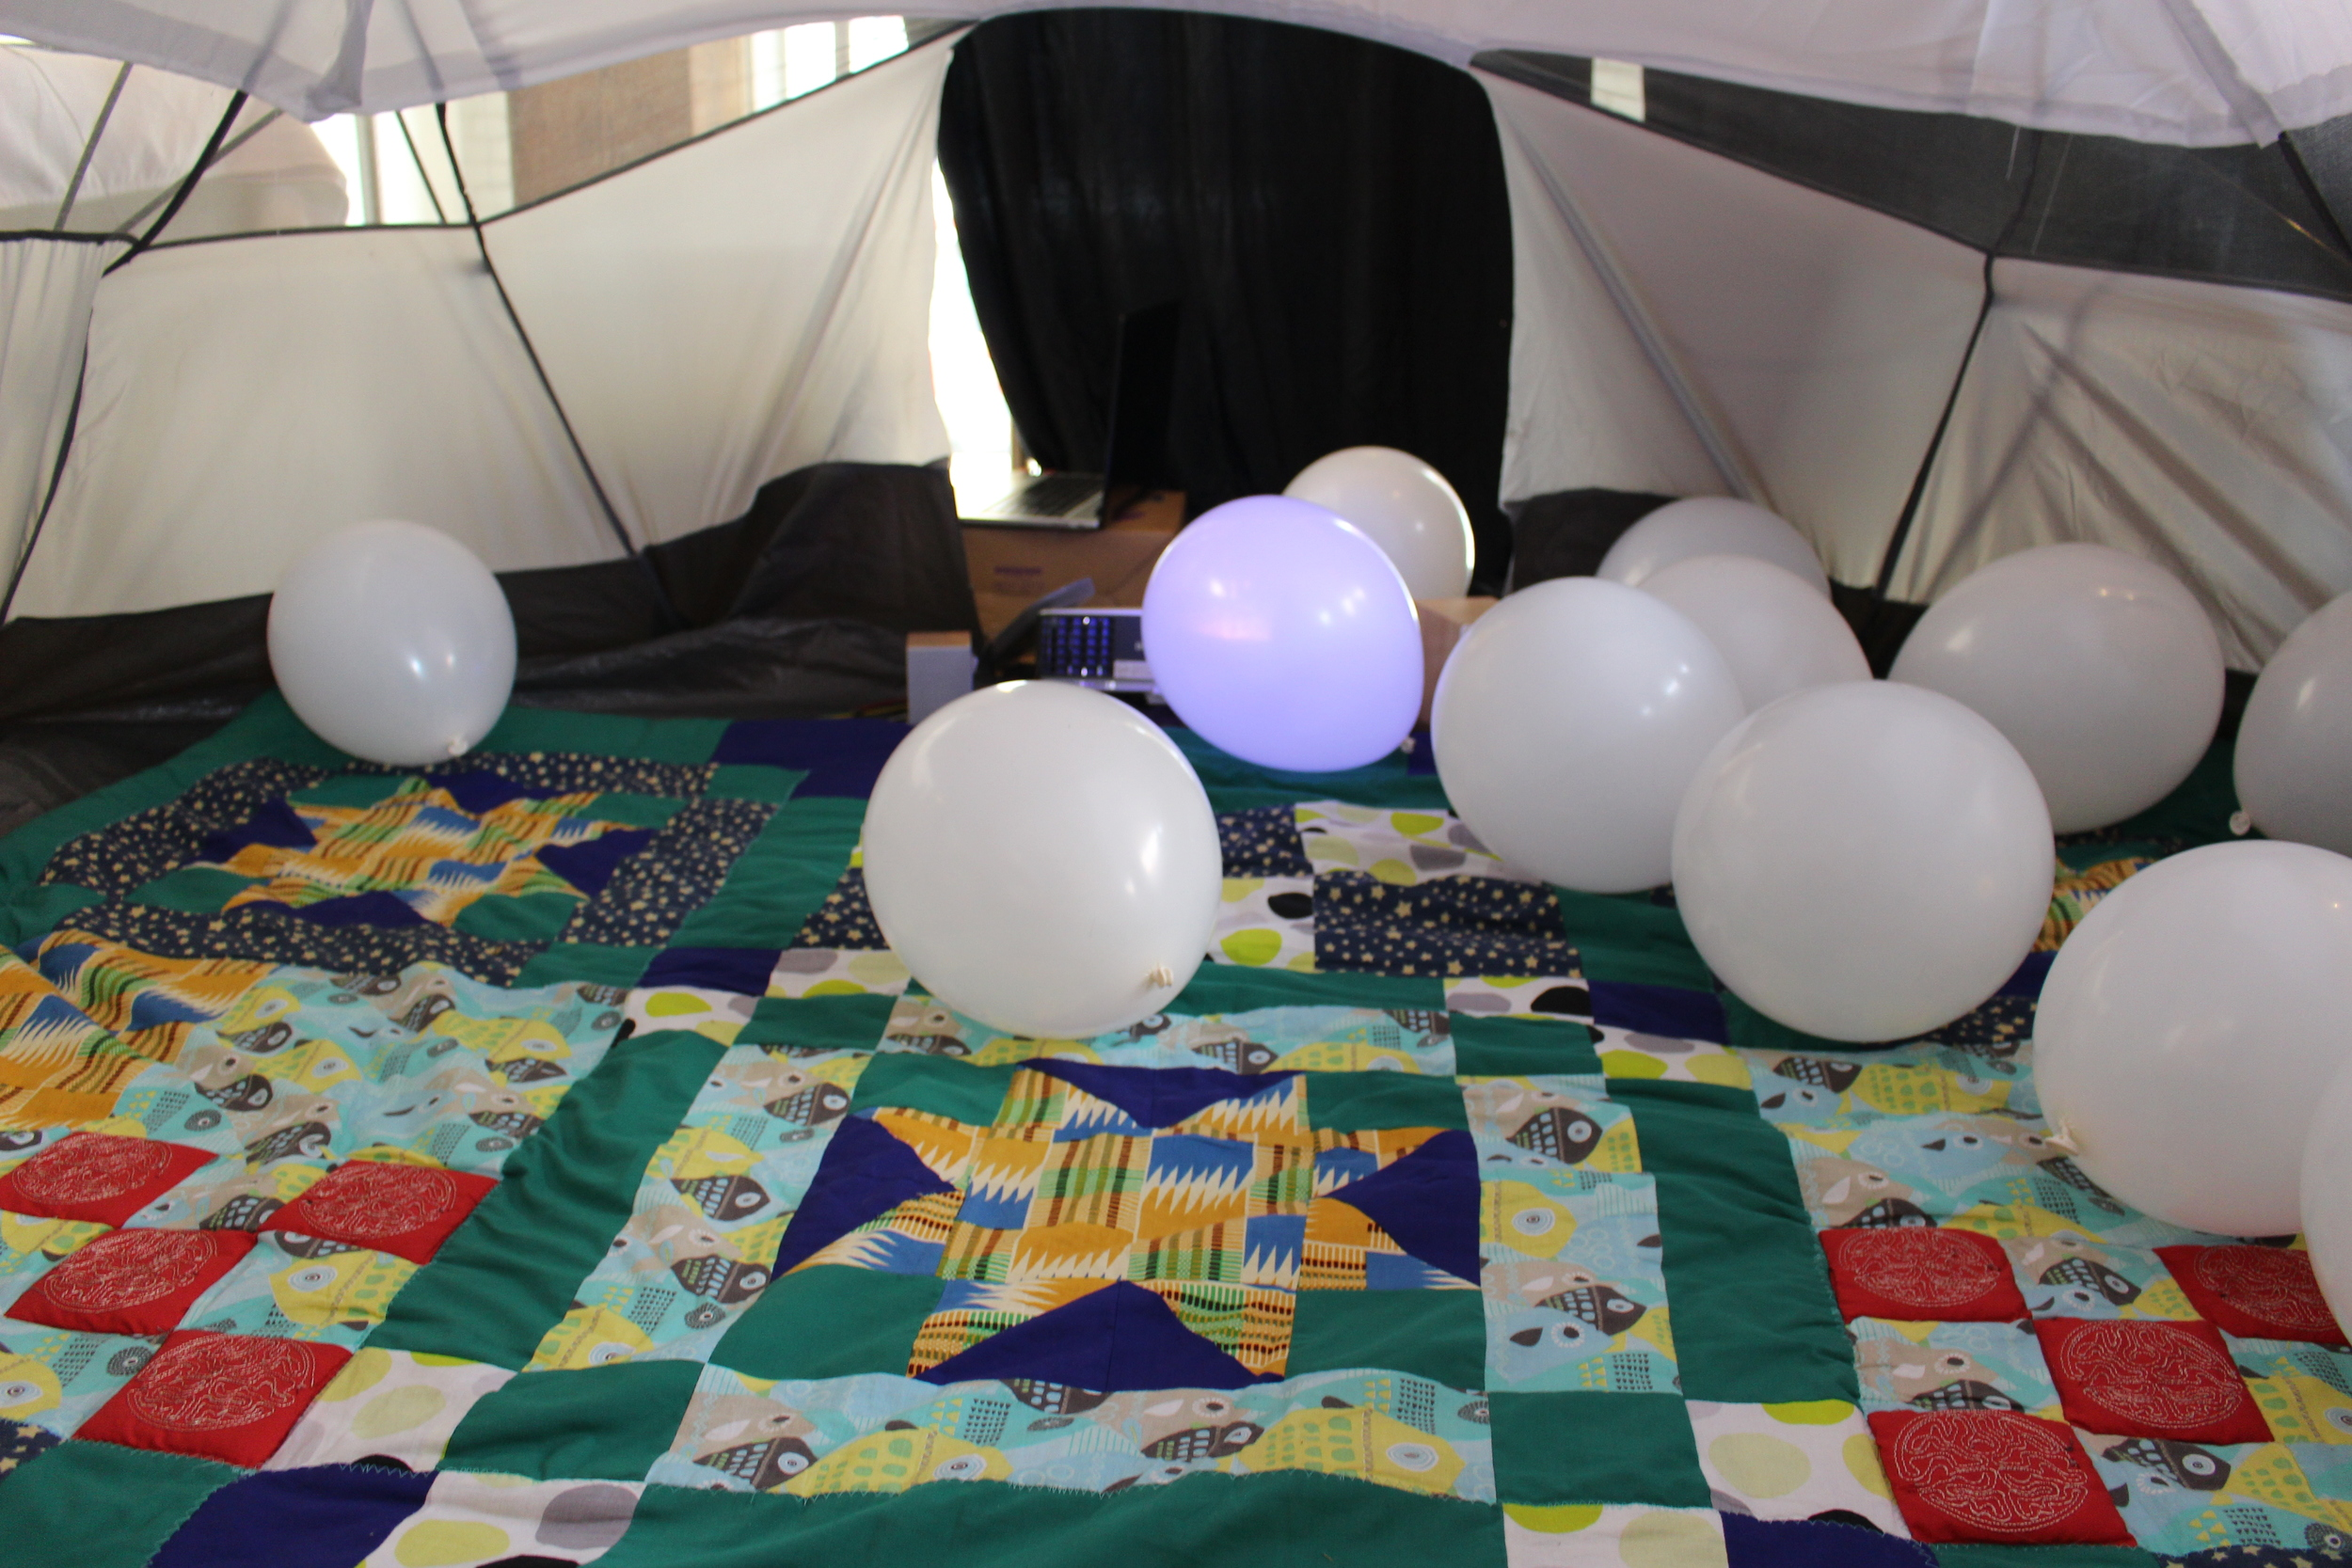 Mouffe, the interactive tent, where the quilt is the controller for a screen projected onto the tent's ceiling